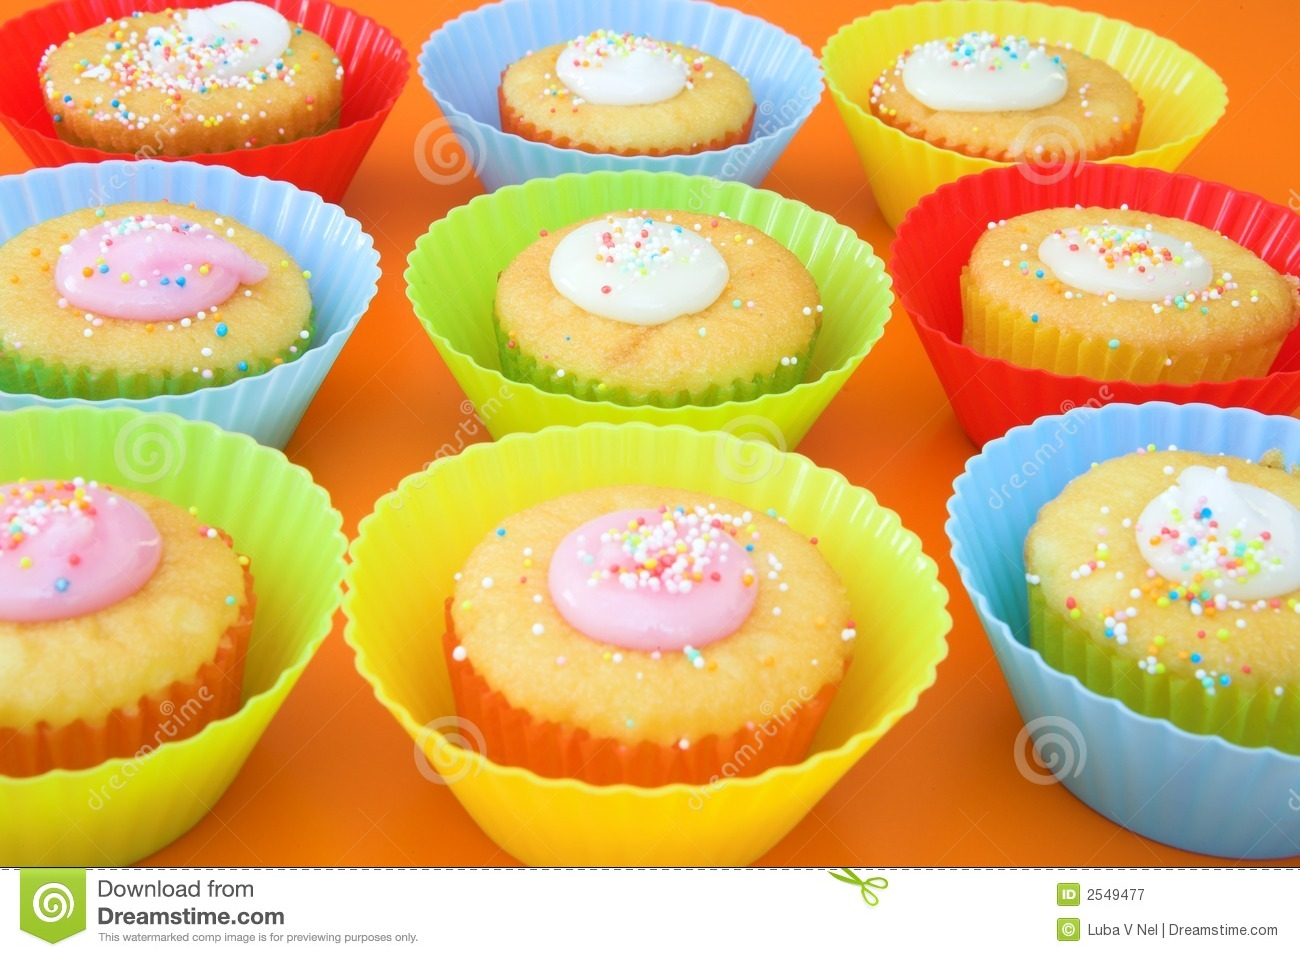 Small party cakes with icing